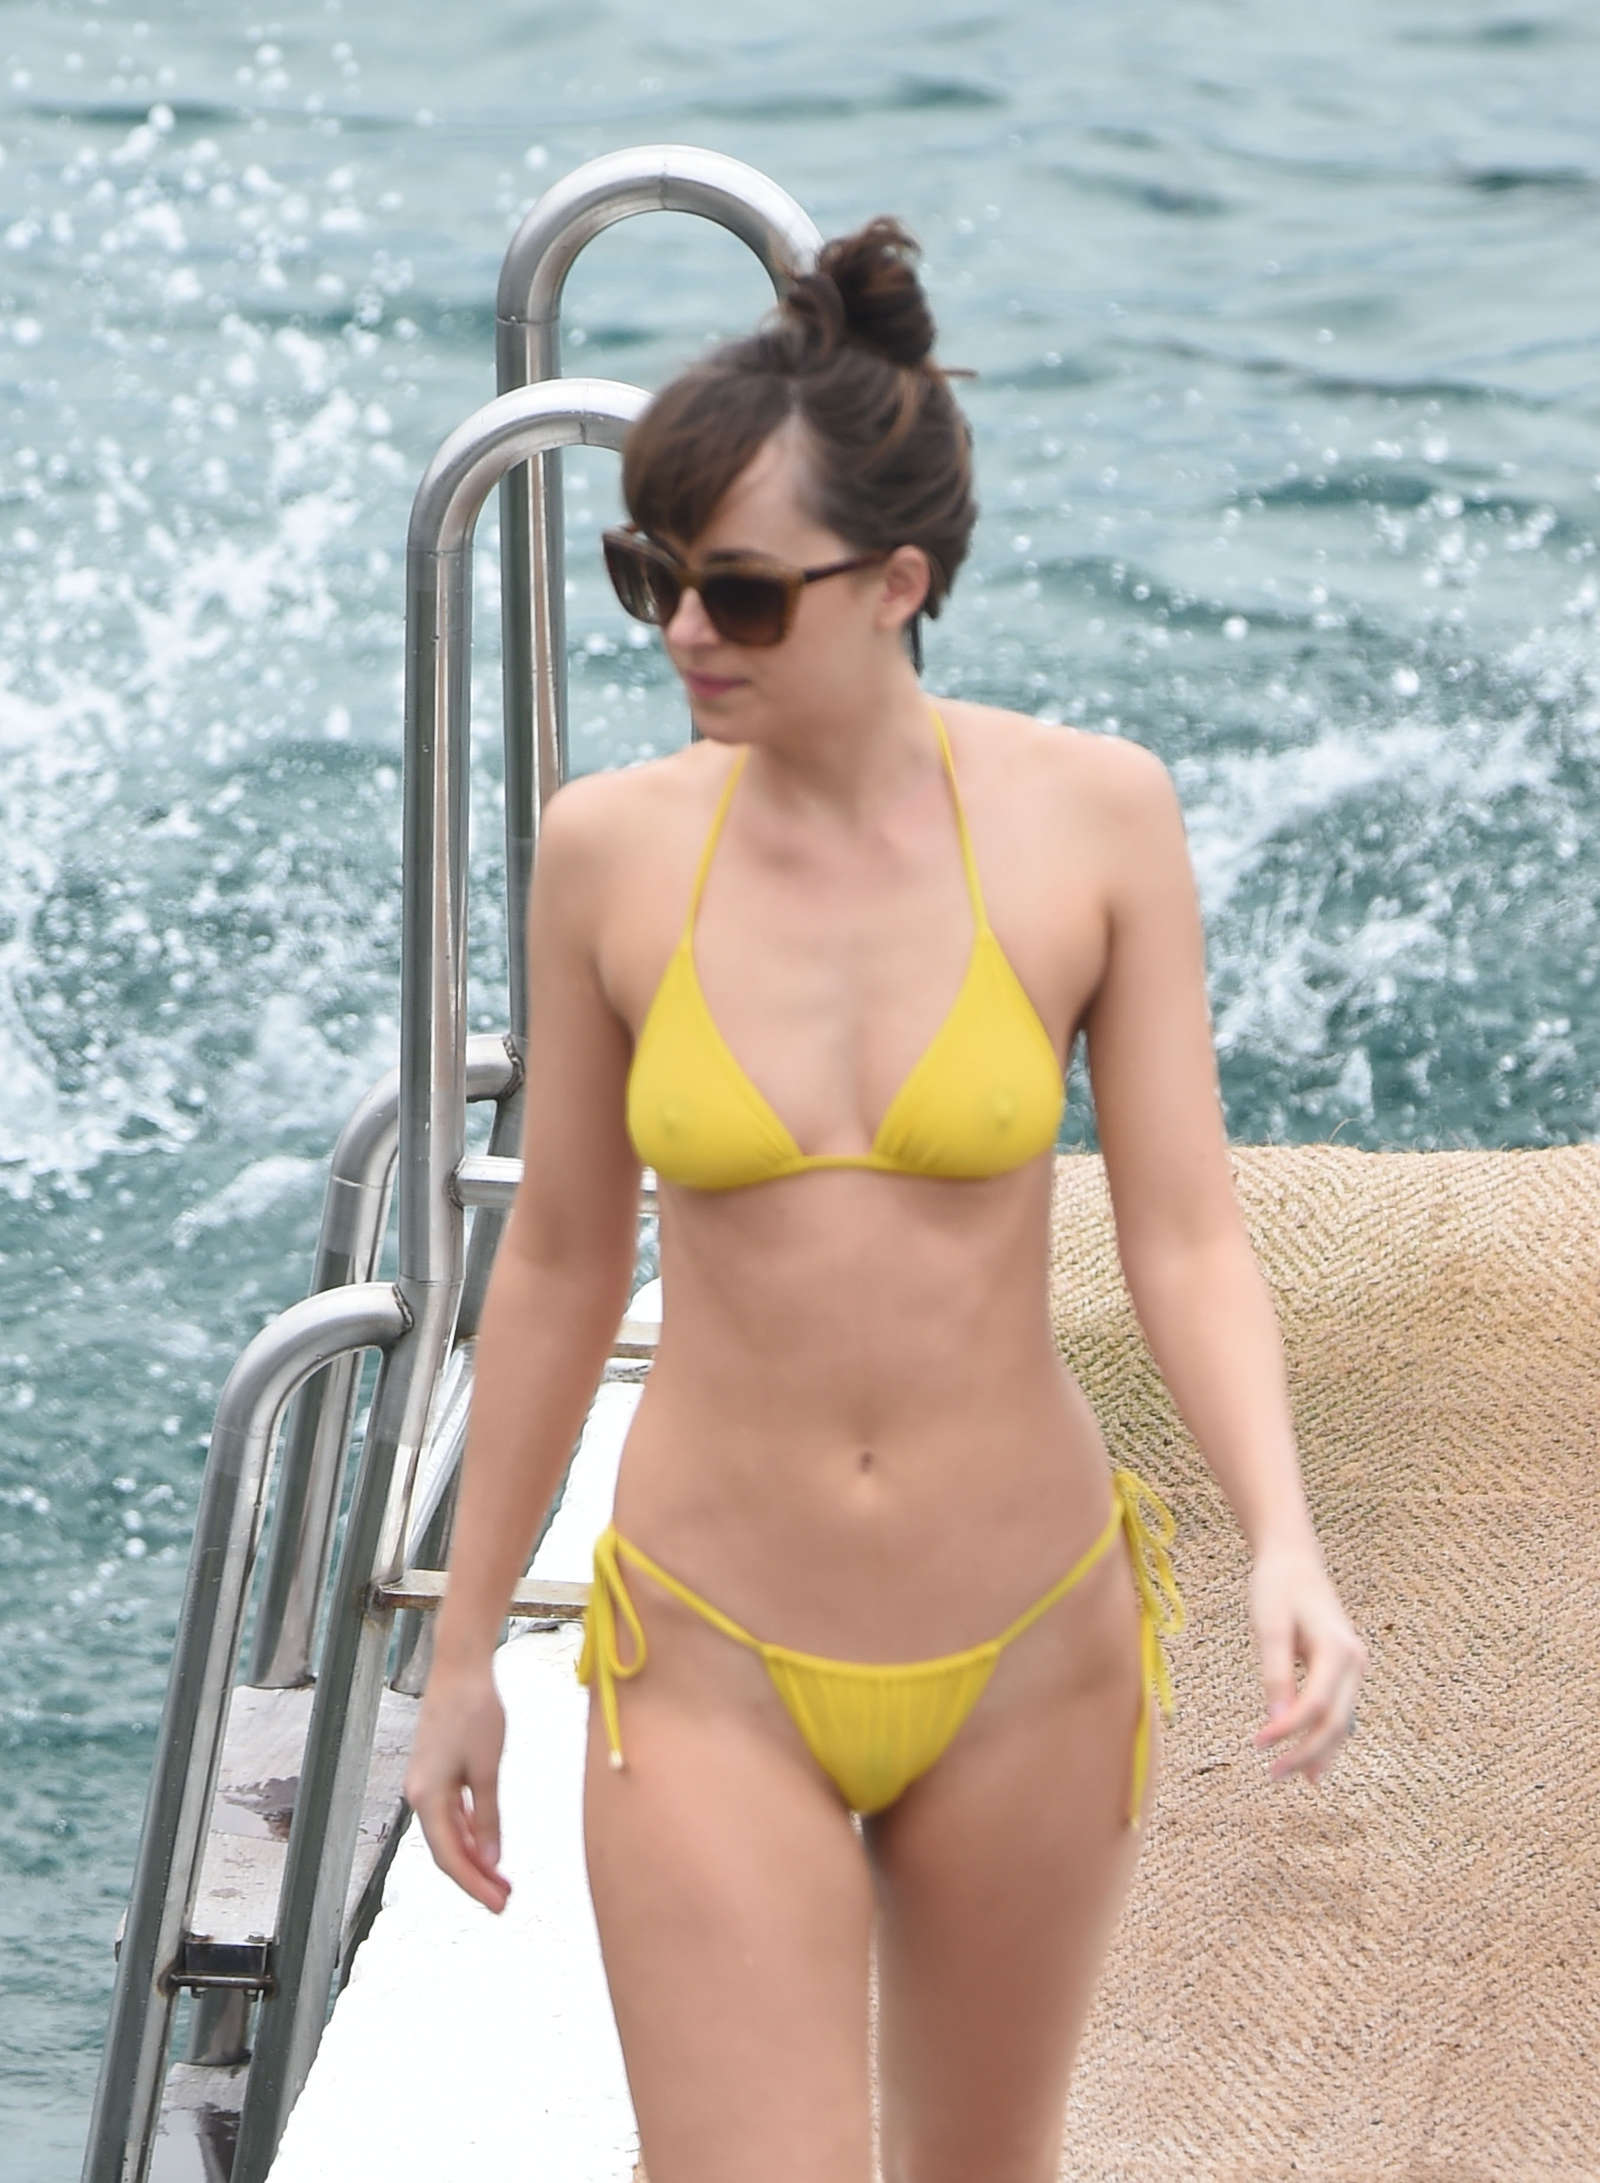 Dakota Johnson 2016 : Dakota Johnson in Yellow Bikini 2016 -25